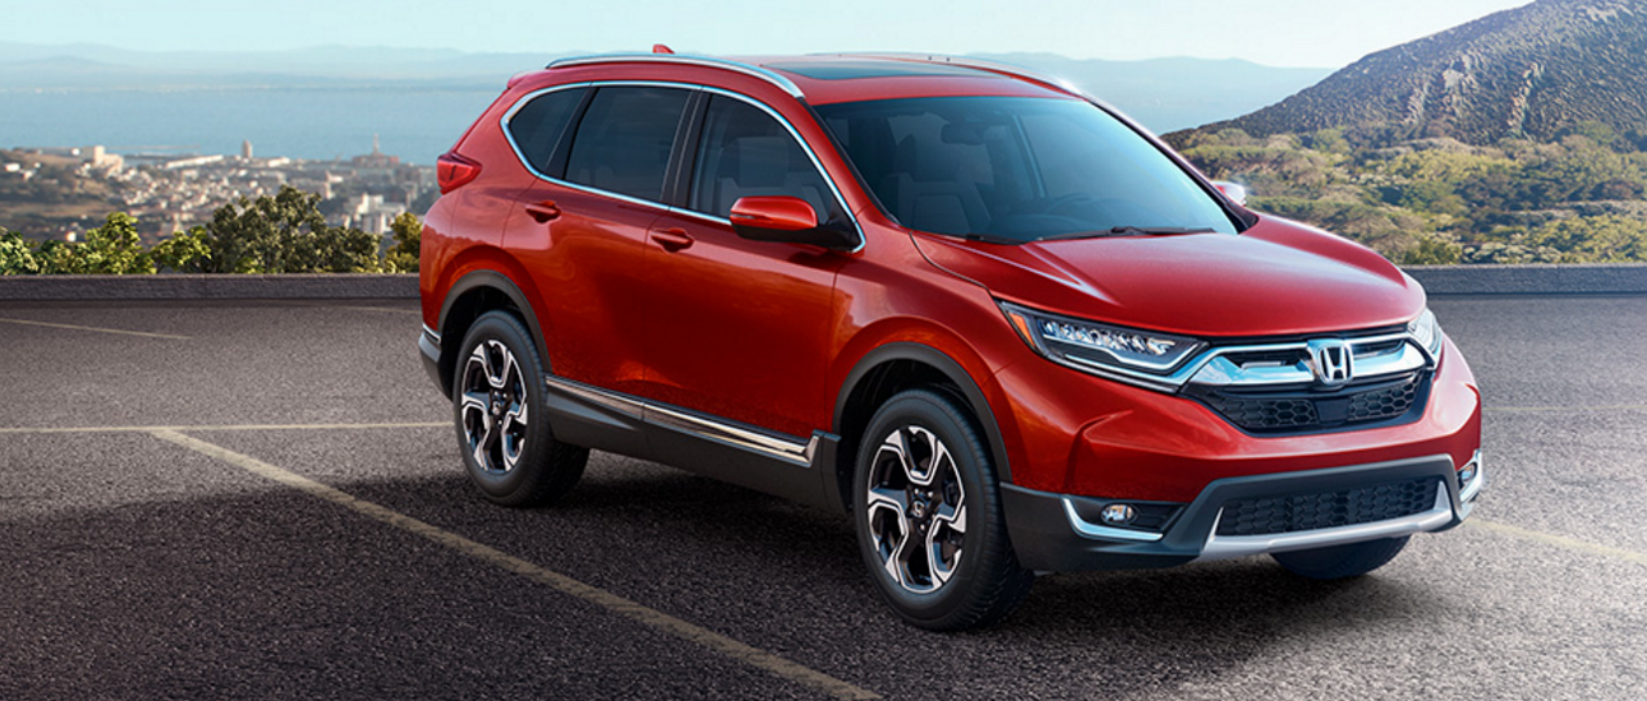 Valley Chevy - Top-Rated SUVs to Buy: Honda CR-V - Red